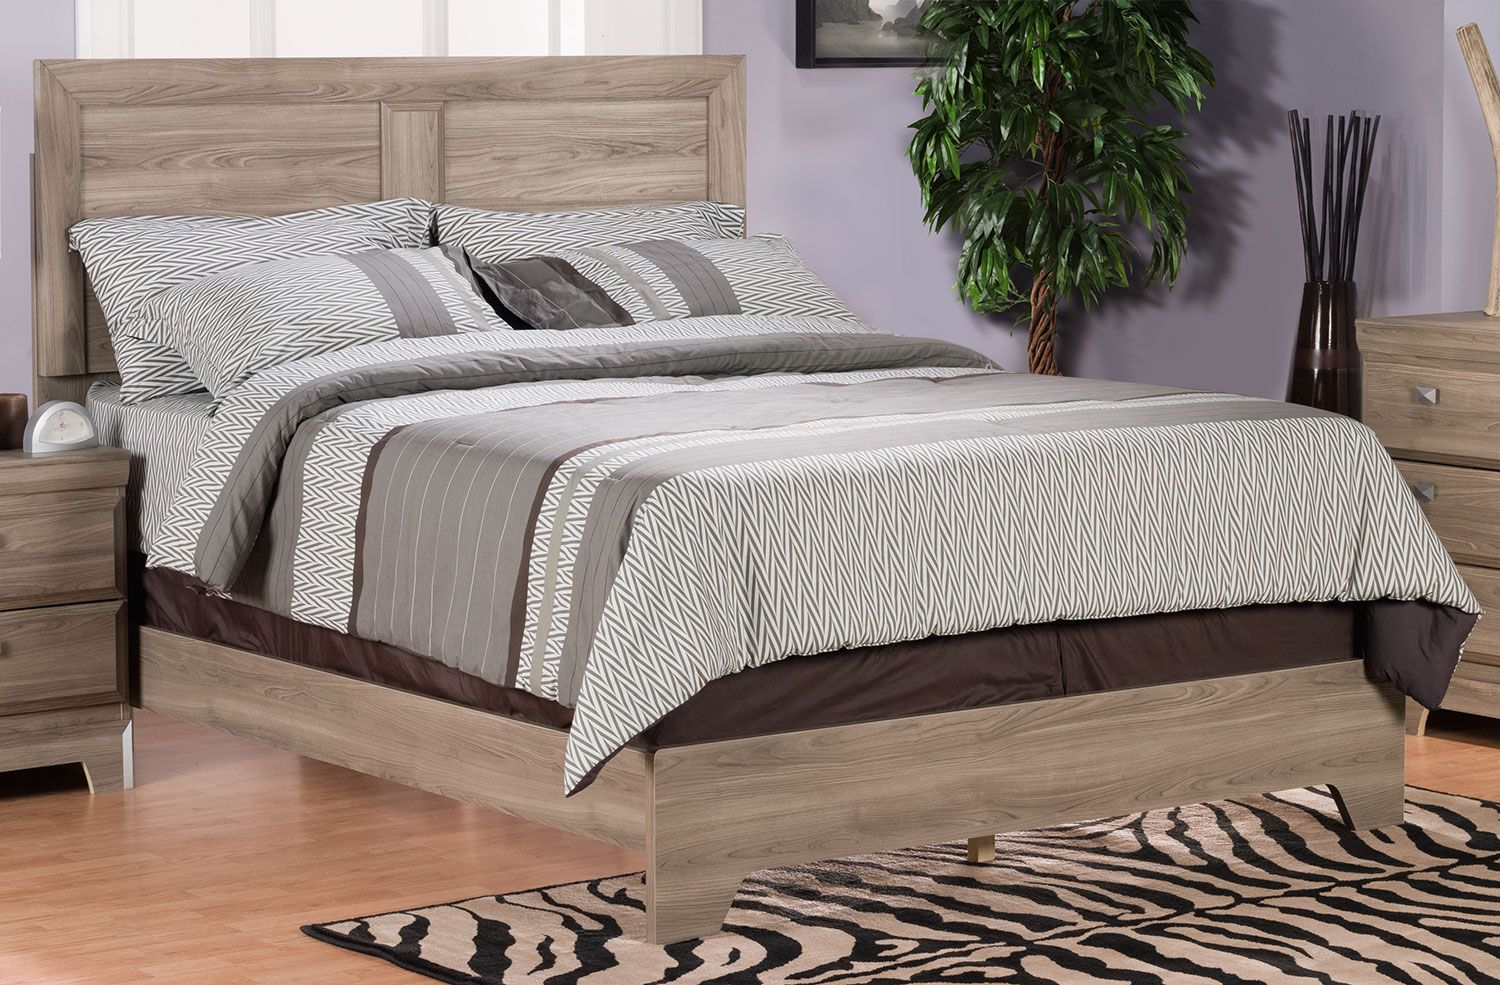 Bedroom Furniture Yorkdale Light Queen Panel Bed Queen